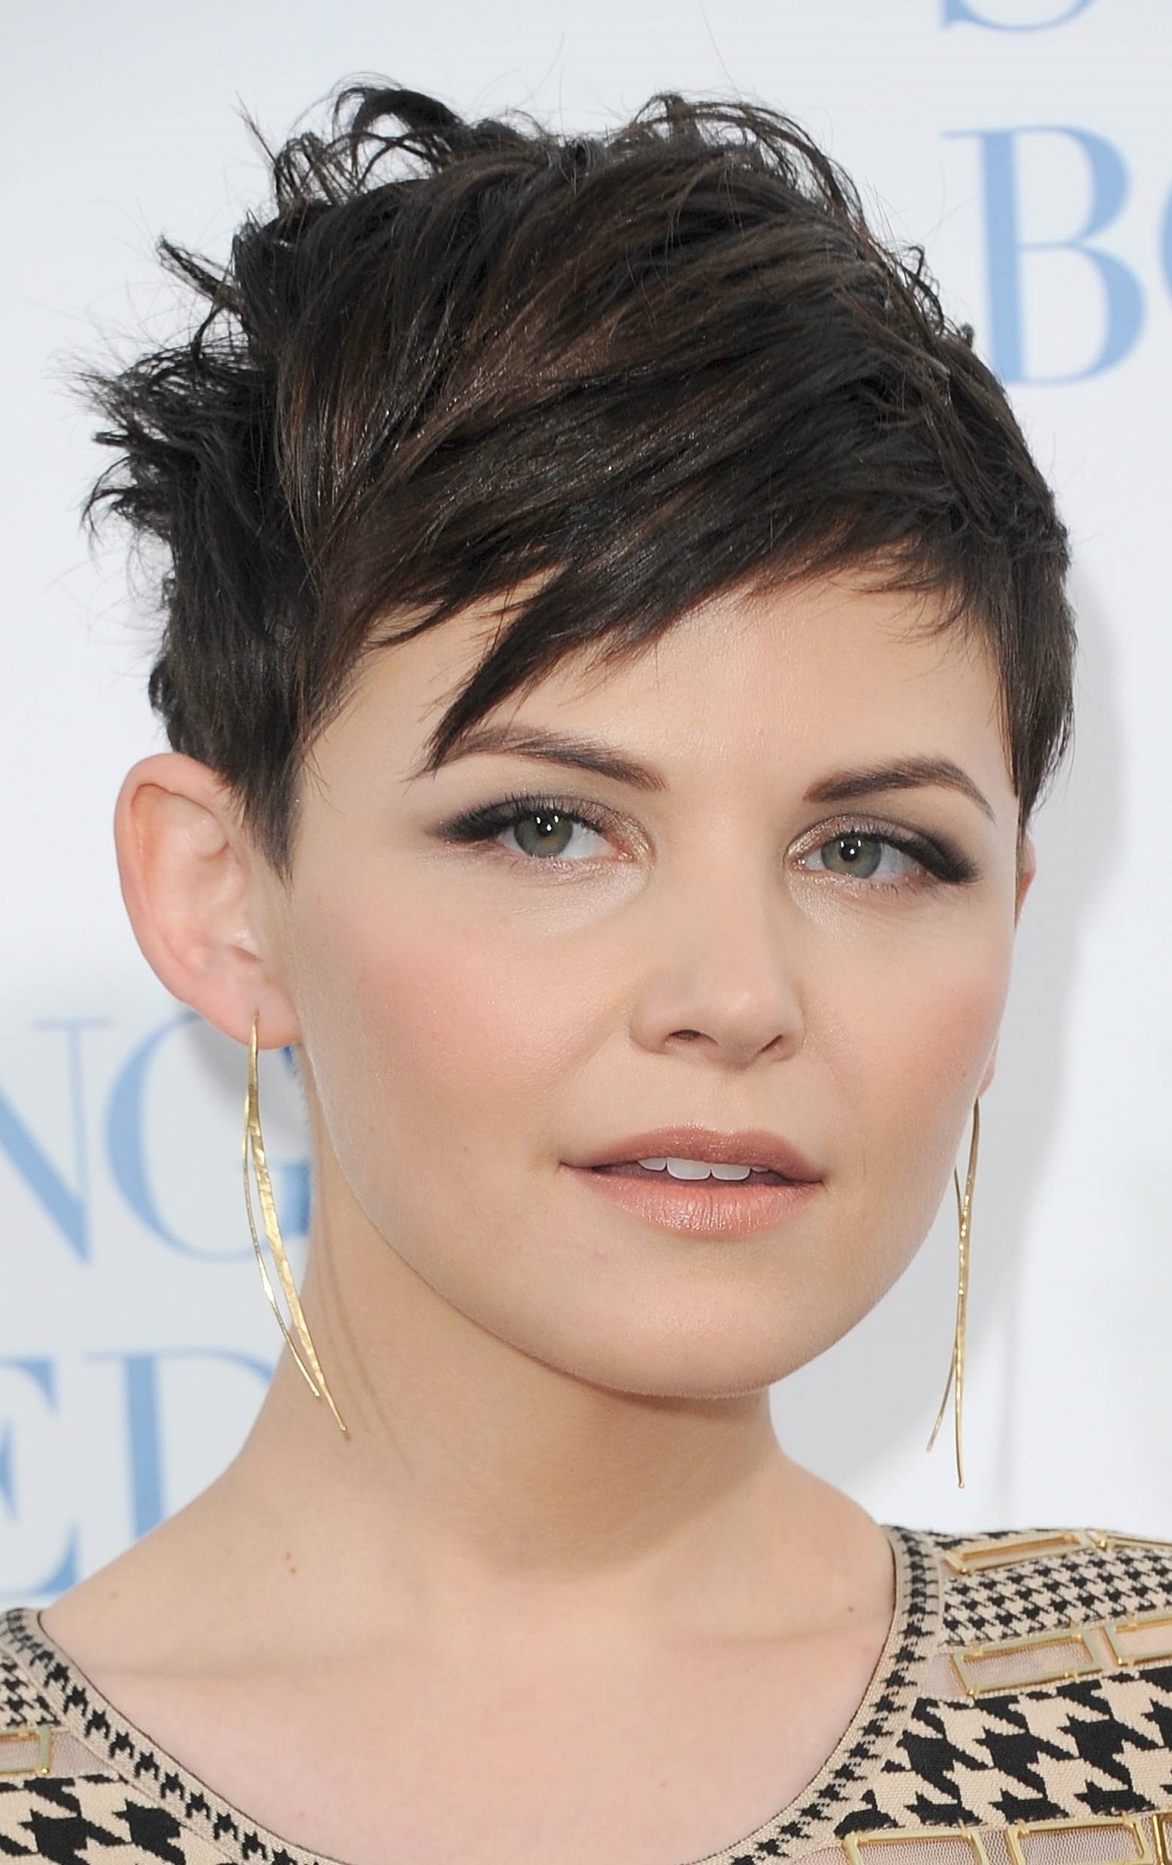 Swell 16 Best Short Funky Hairstyles To Inspire Your New Style Schematic Wiring Diagrams Phreekkolirunnerswayorg